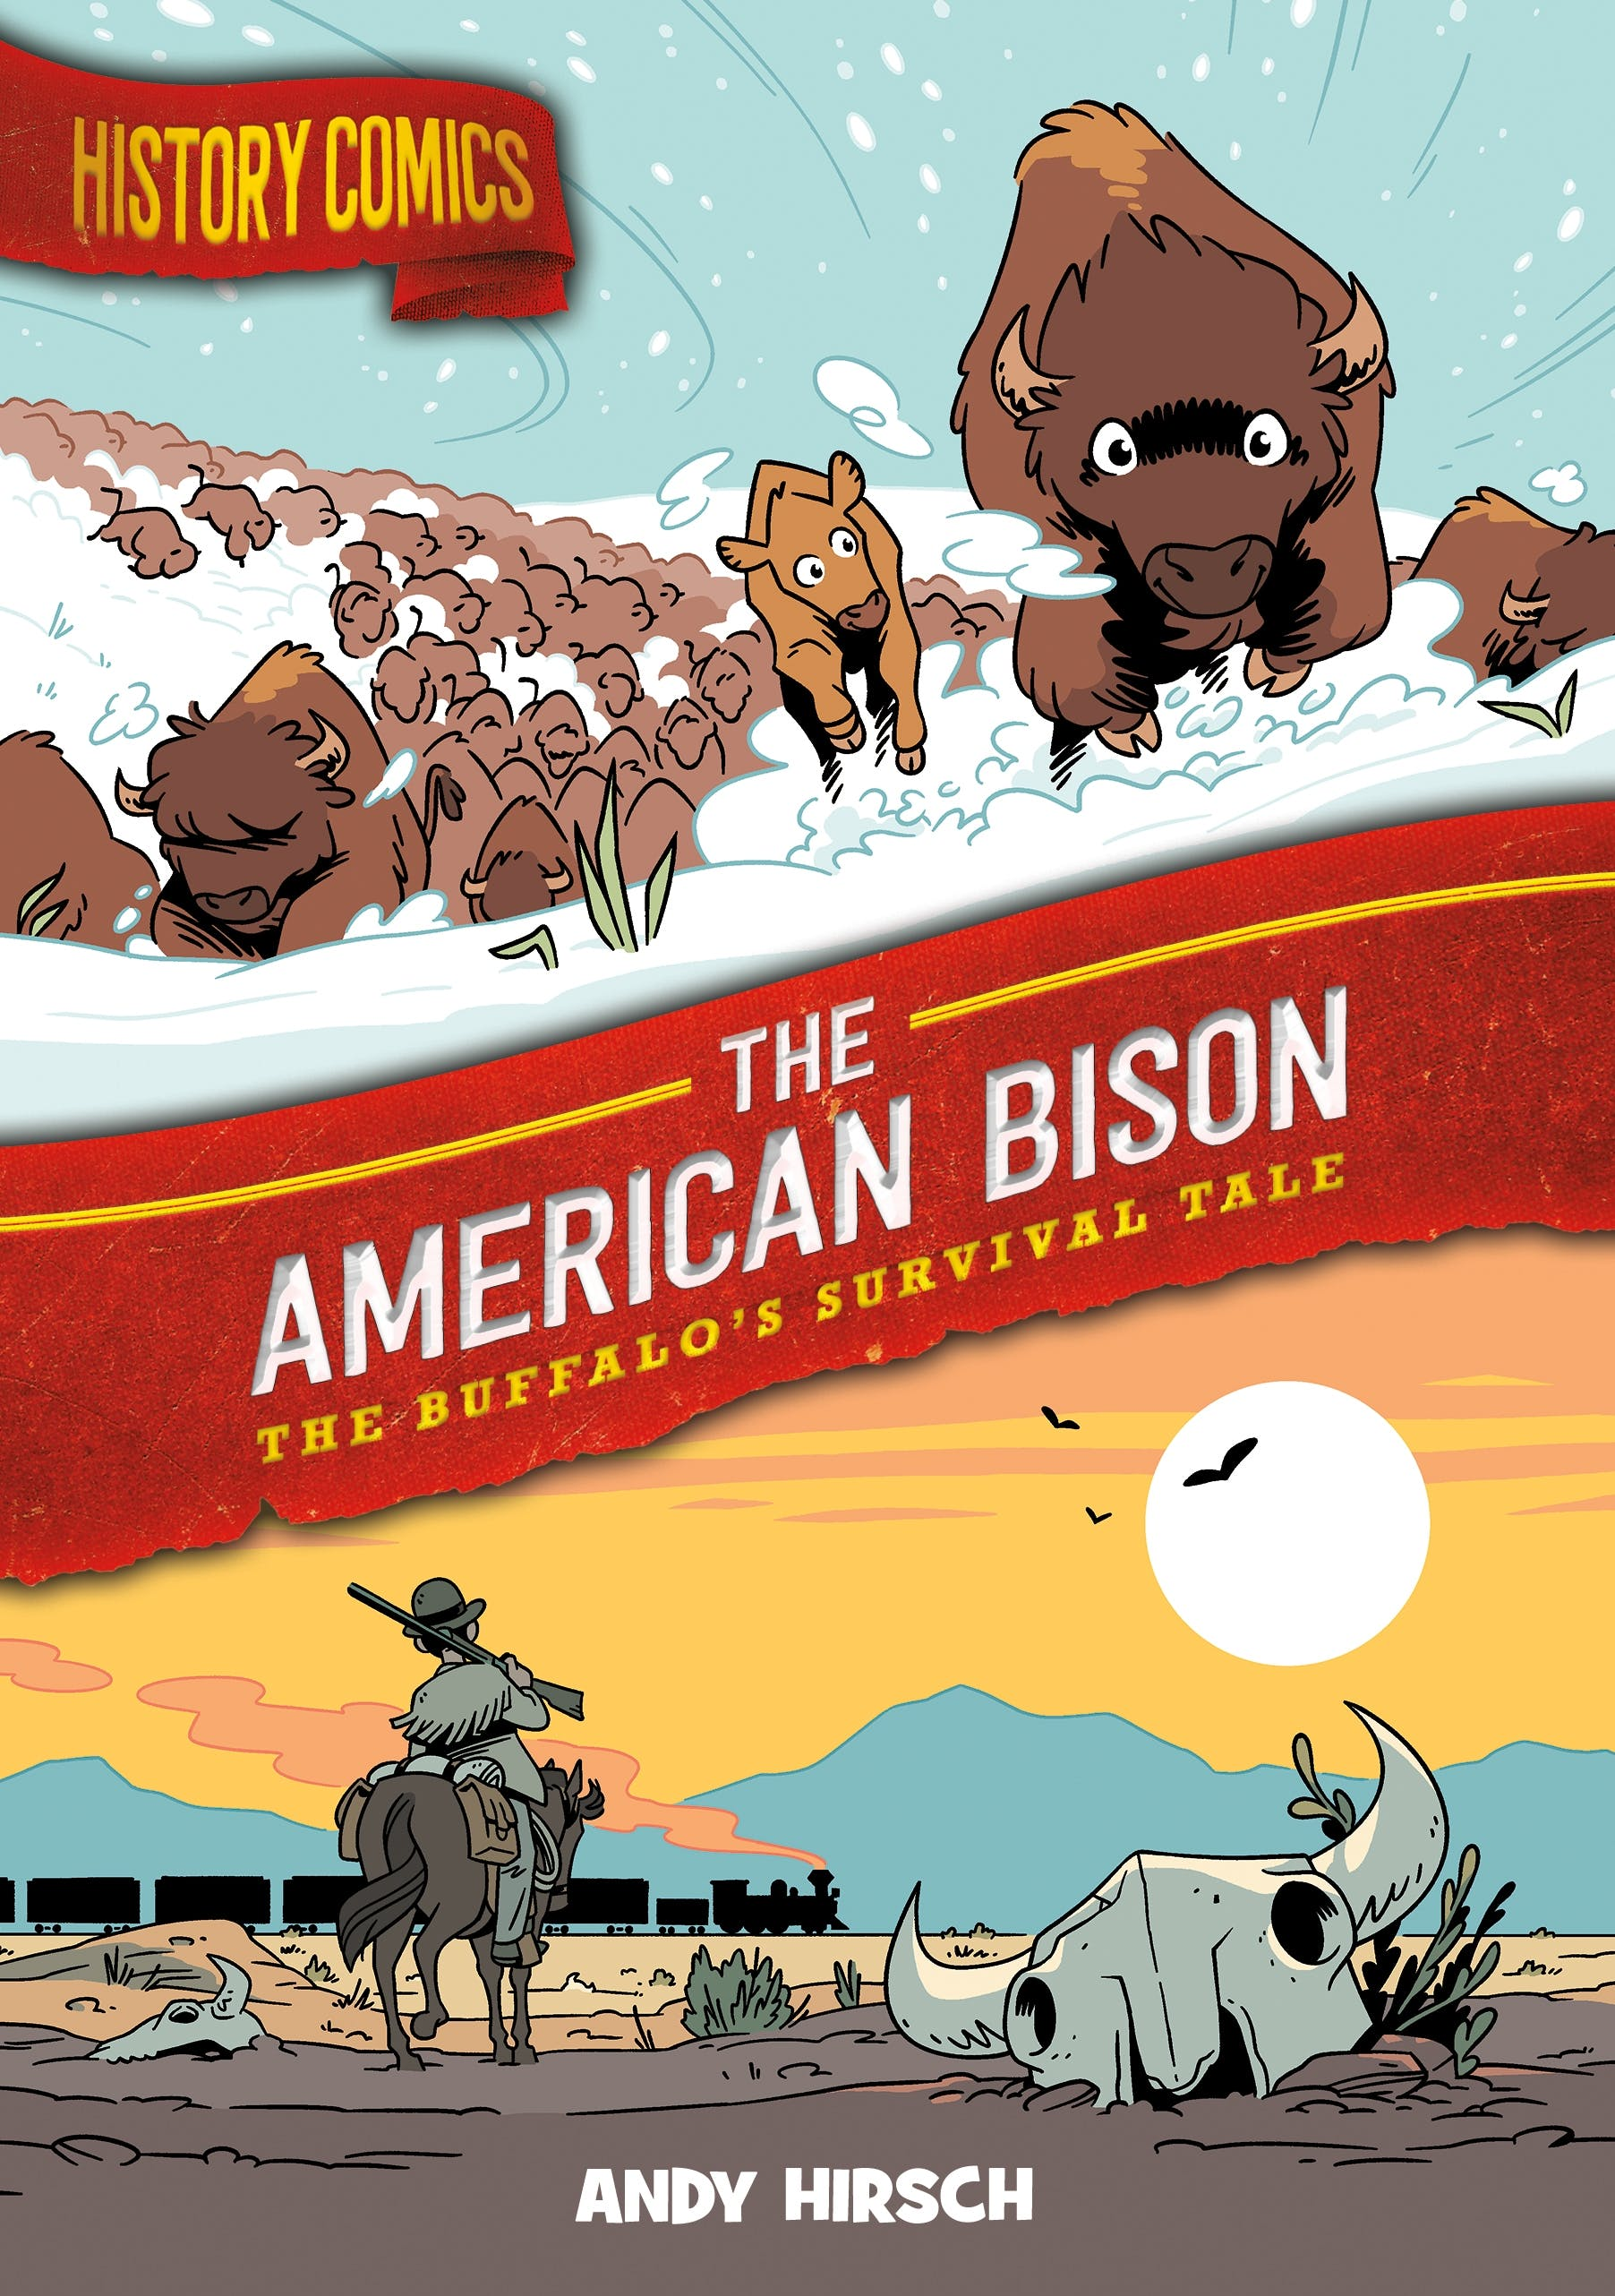 Image of History Comics: The American Bison